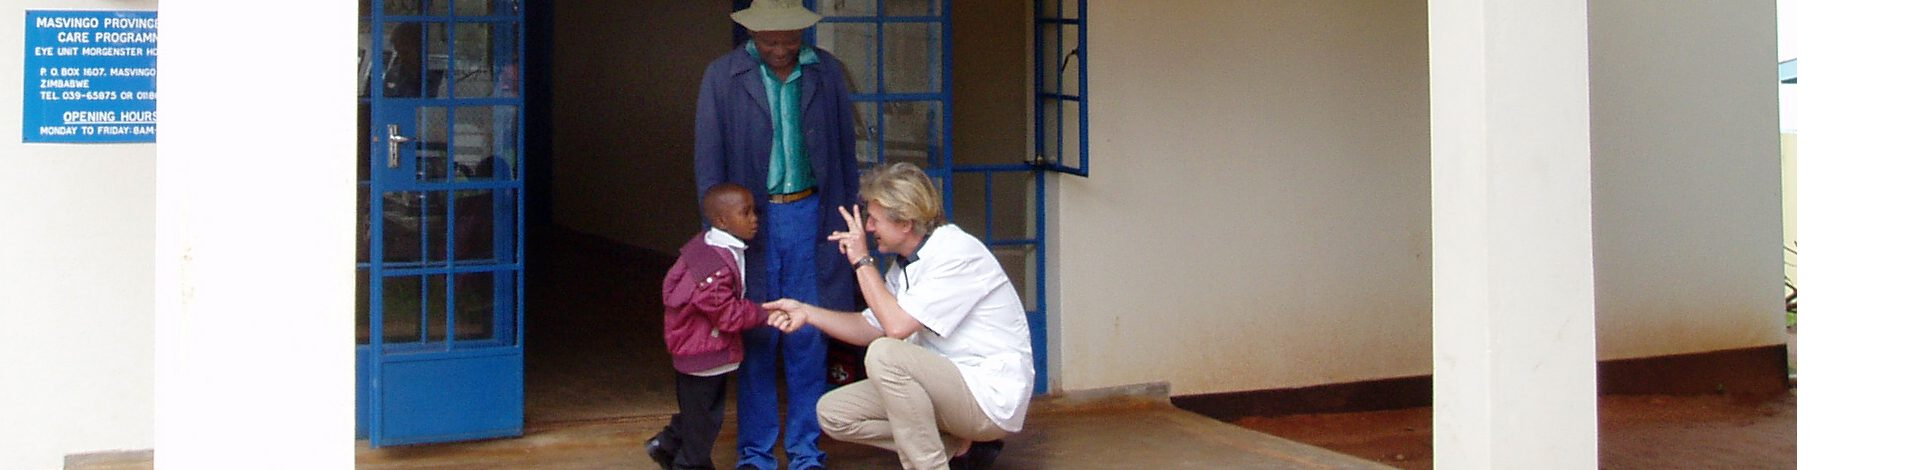 Doctor outside front of eye clinic testing young patient's eye sight in Zimbabwe.